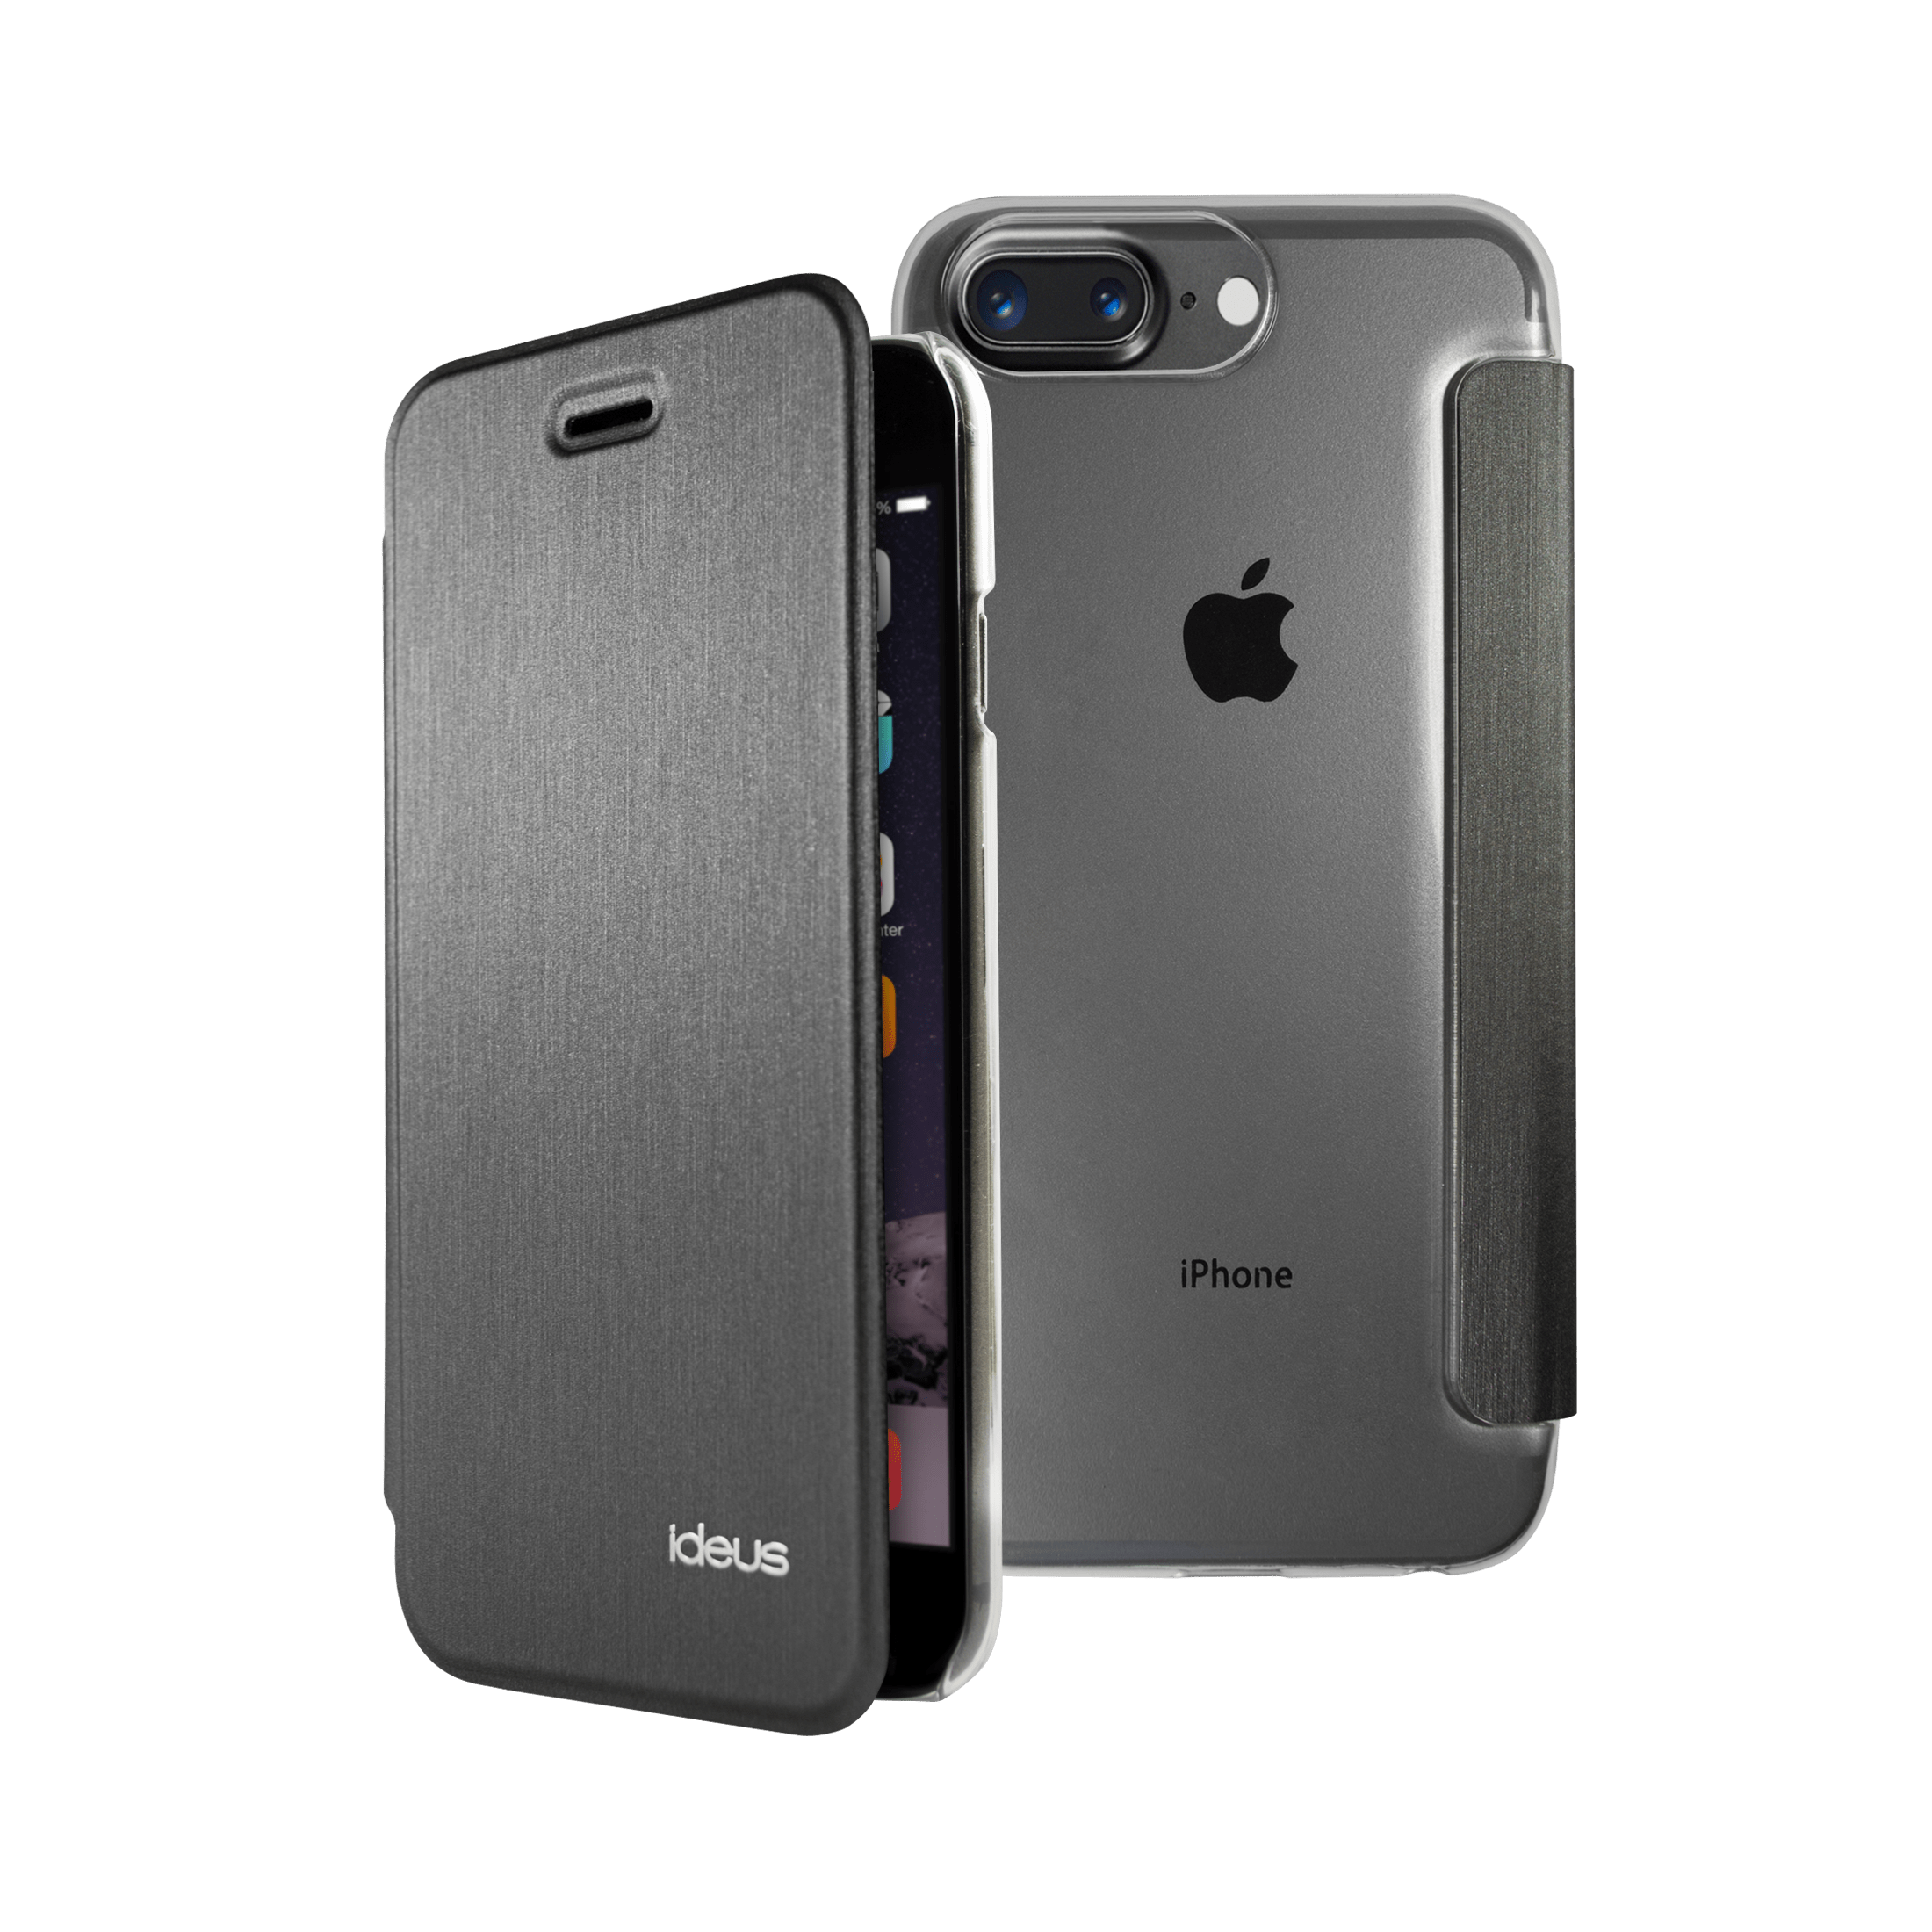 Funda Libro Iphone 7 Funda Ultra Thin Premium Iphone 8 Plus 7 Plus Ideus